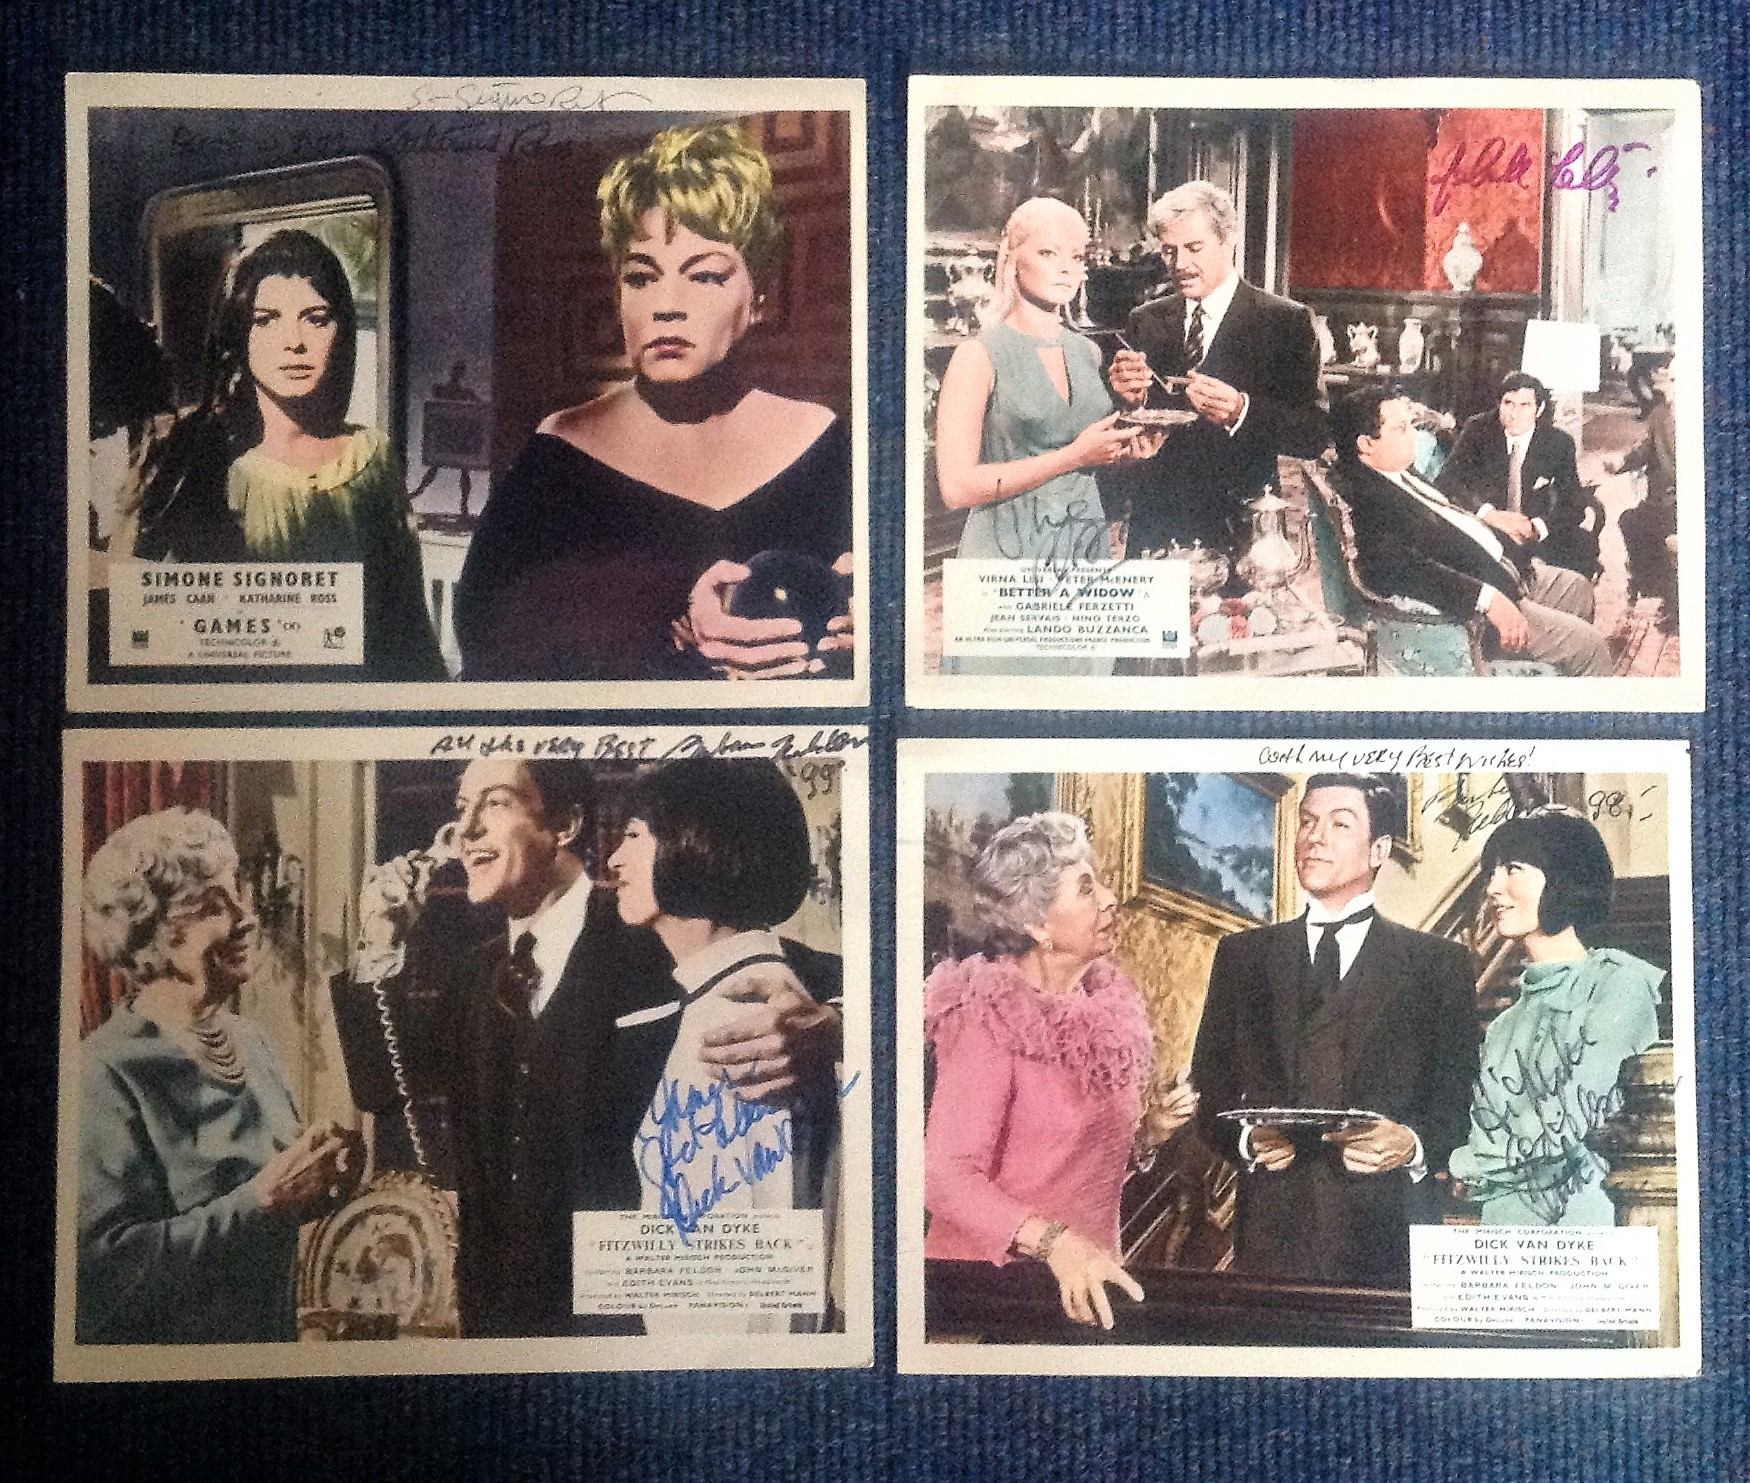 Lot 13 - Lobby card collection. 5 lobby cards signed. Amongst the signatures are Gabrielle Ferzetti,